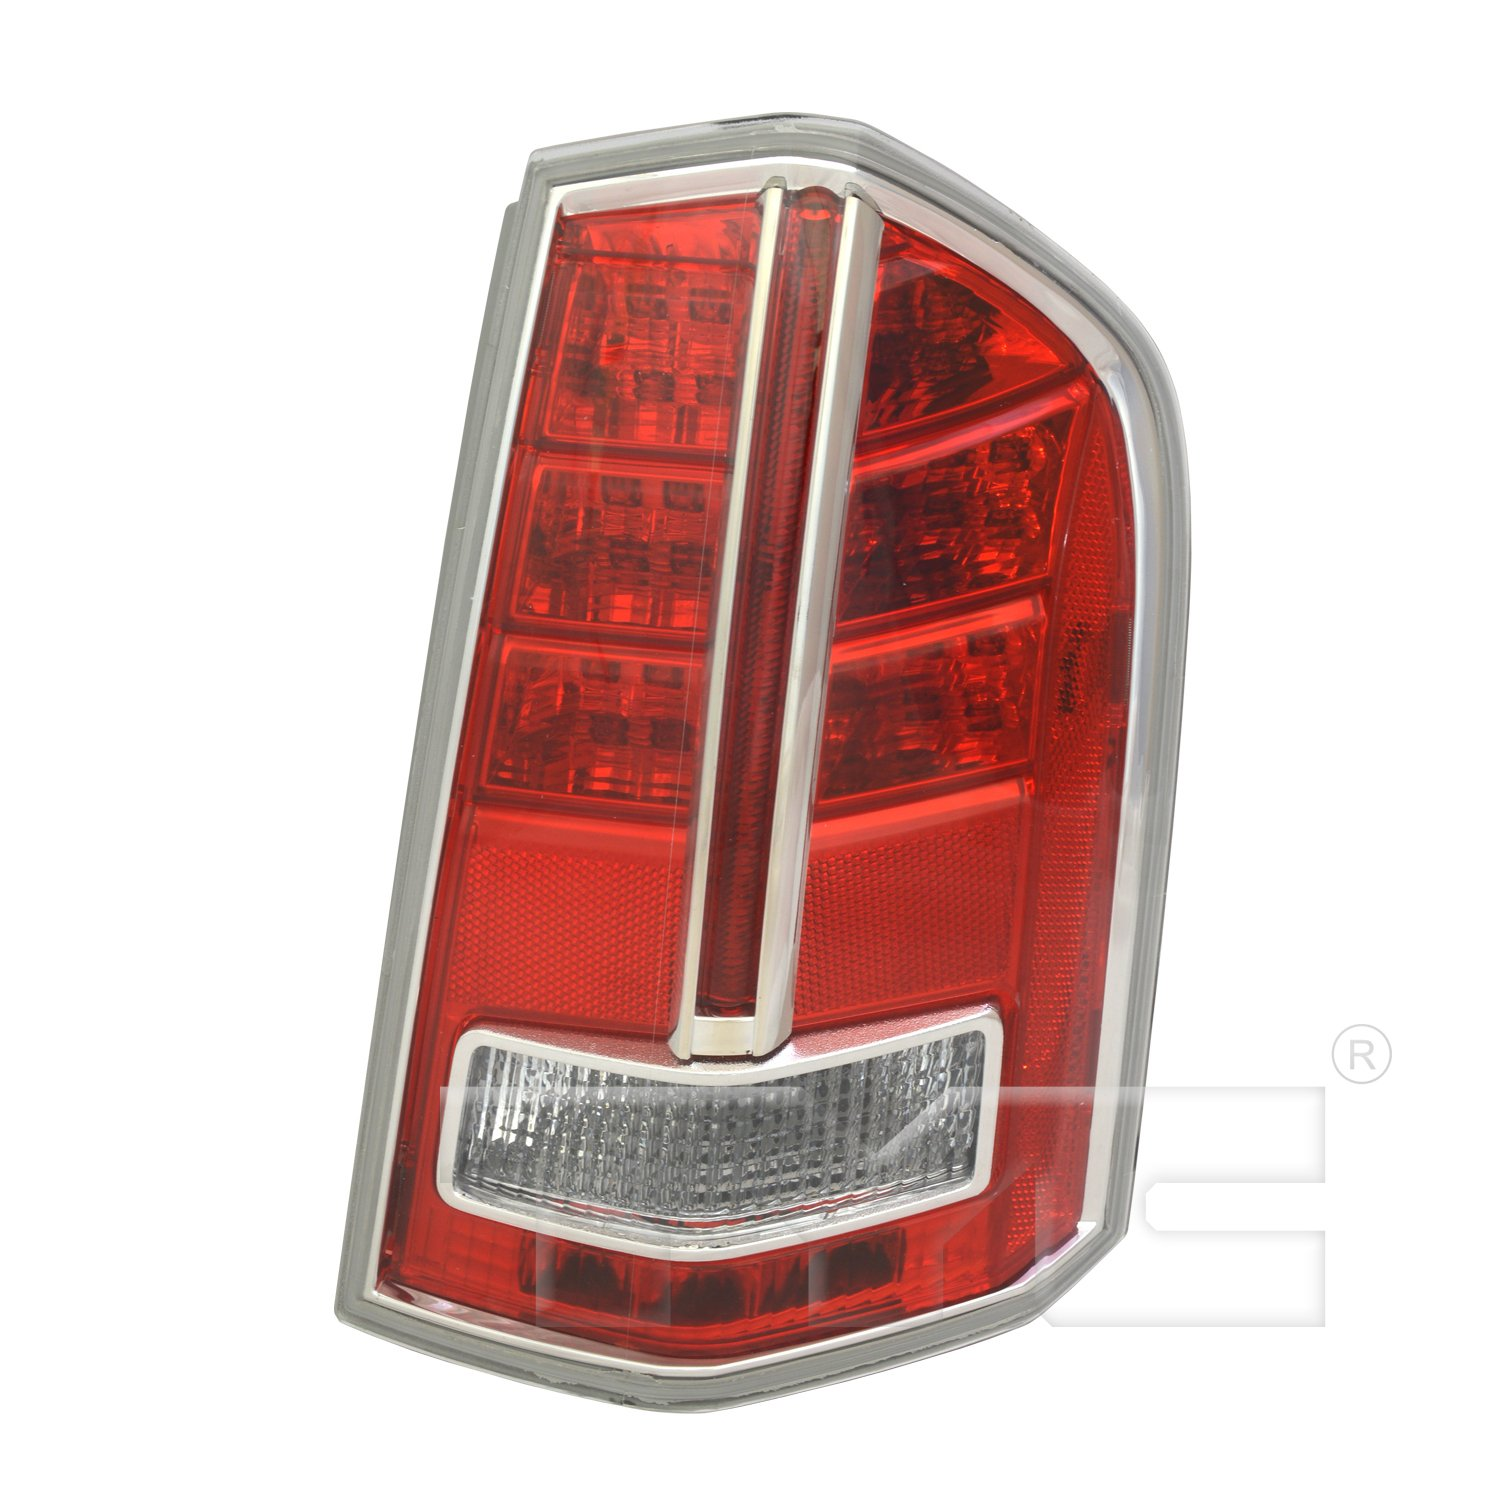 TYC 11-6637-00 Chrysler 300 Right Replacement Tail Lamp